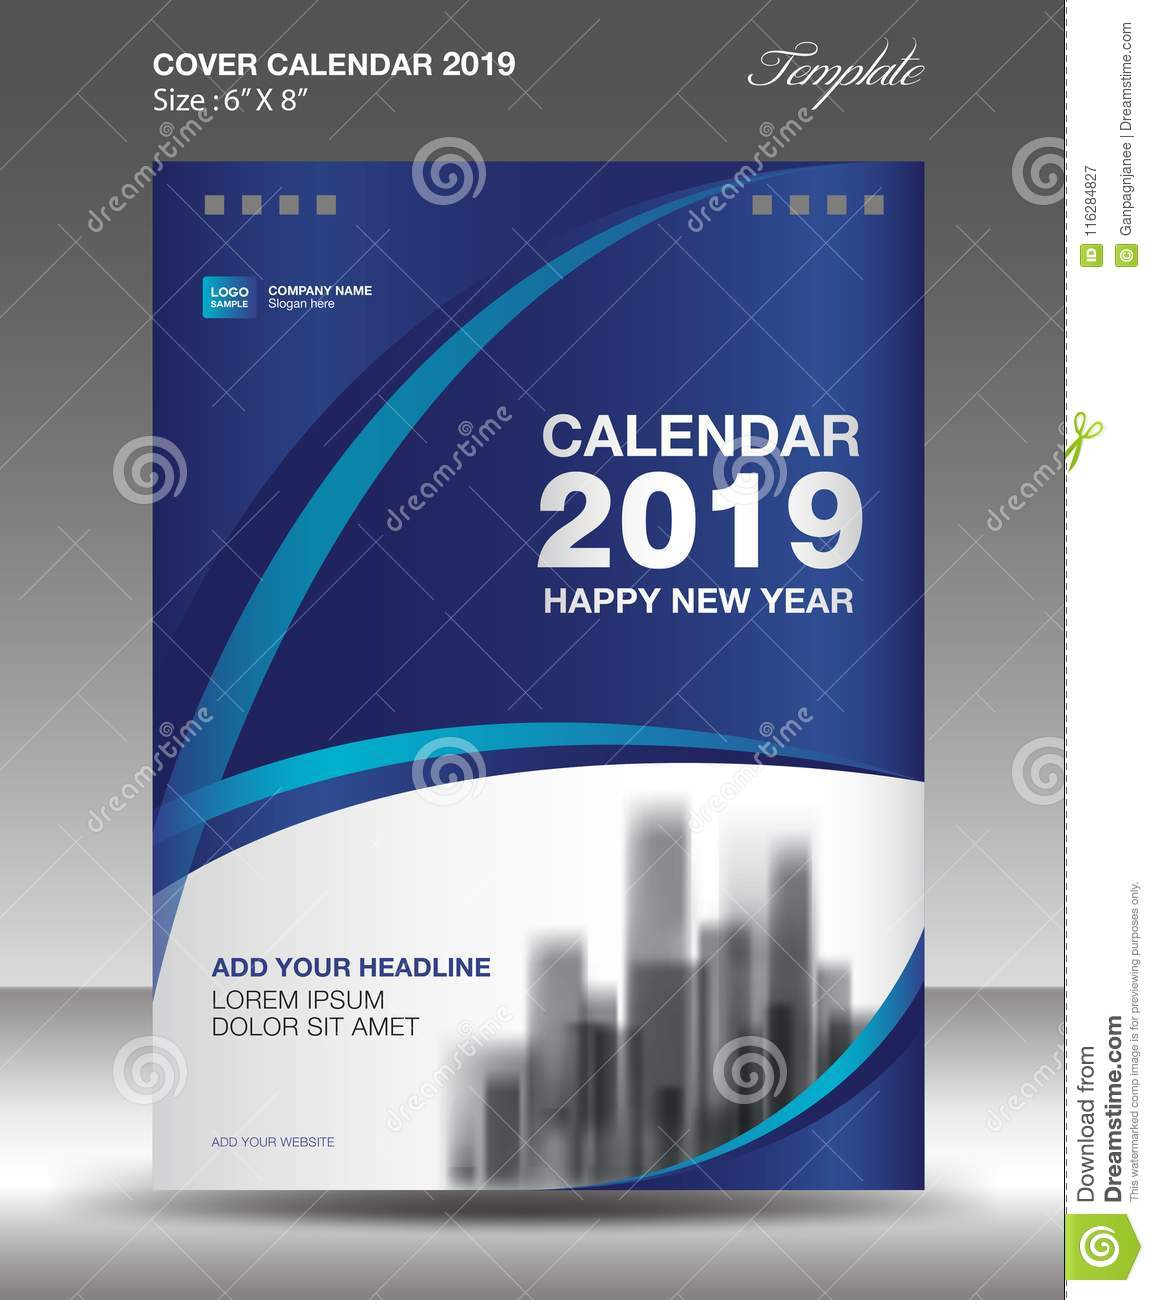 Calendar Cover Page Design : Blue cover desk calendar design flyer template ads